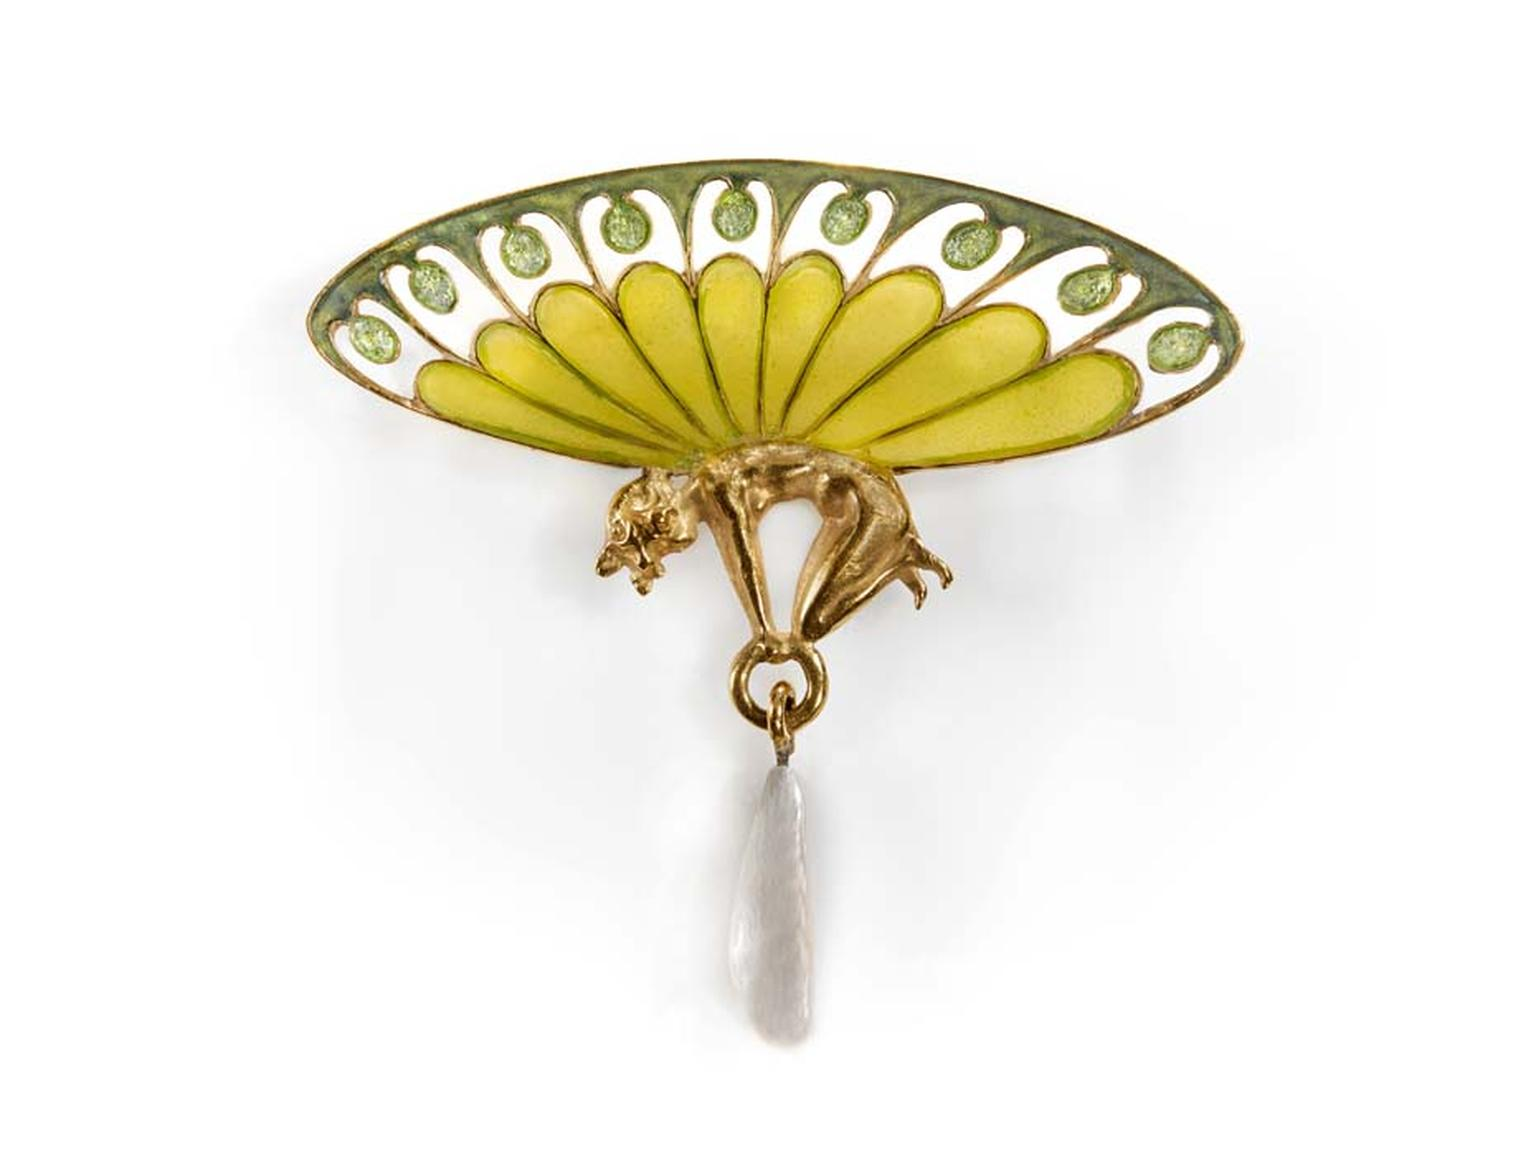 René Lalique Winged Sylph brooch. On display at the Driehaus Museum Maker & Muse exhibition.